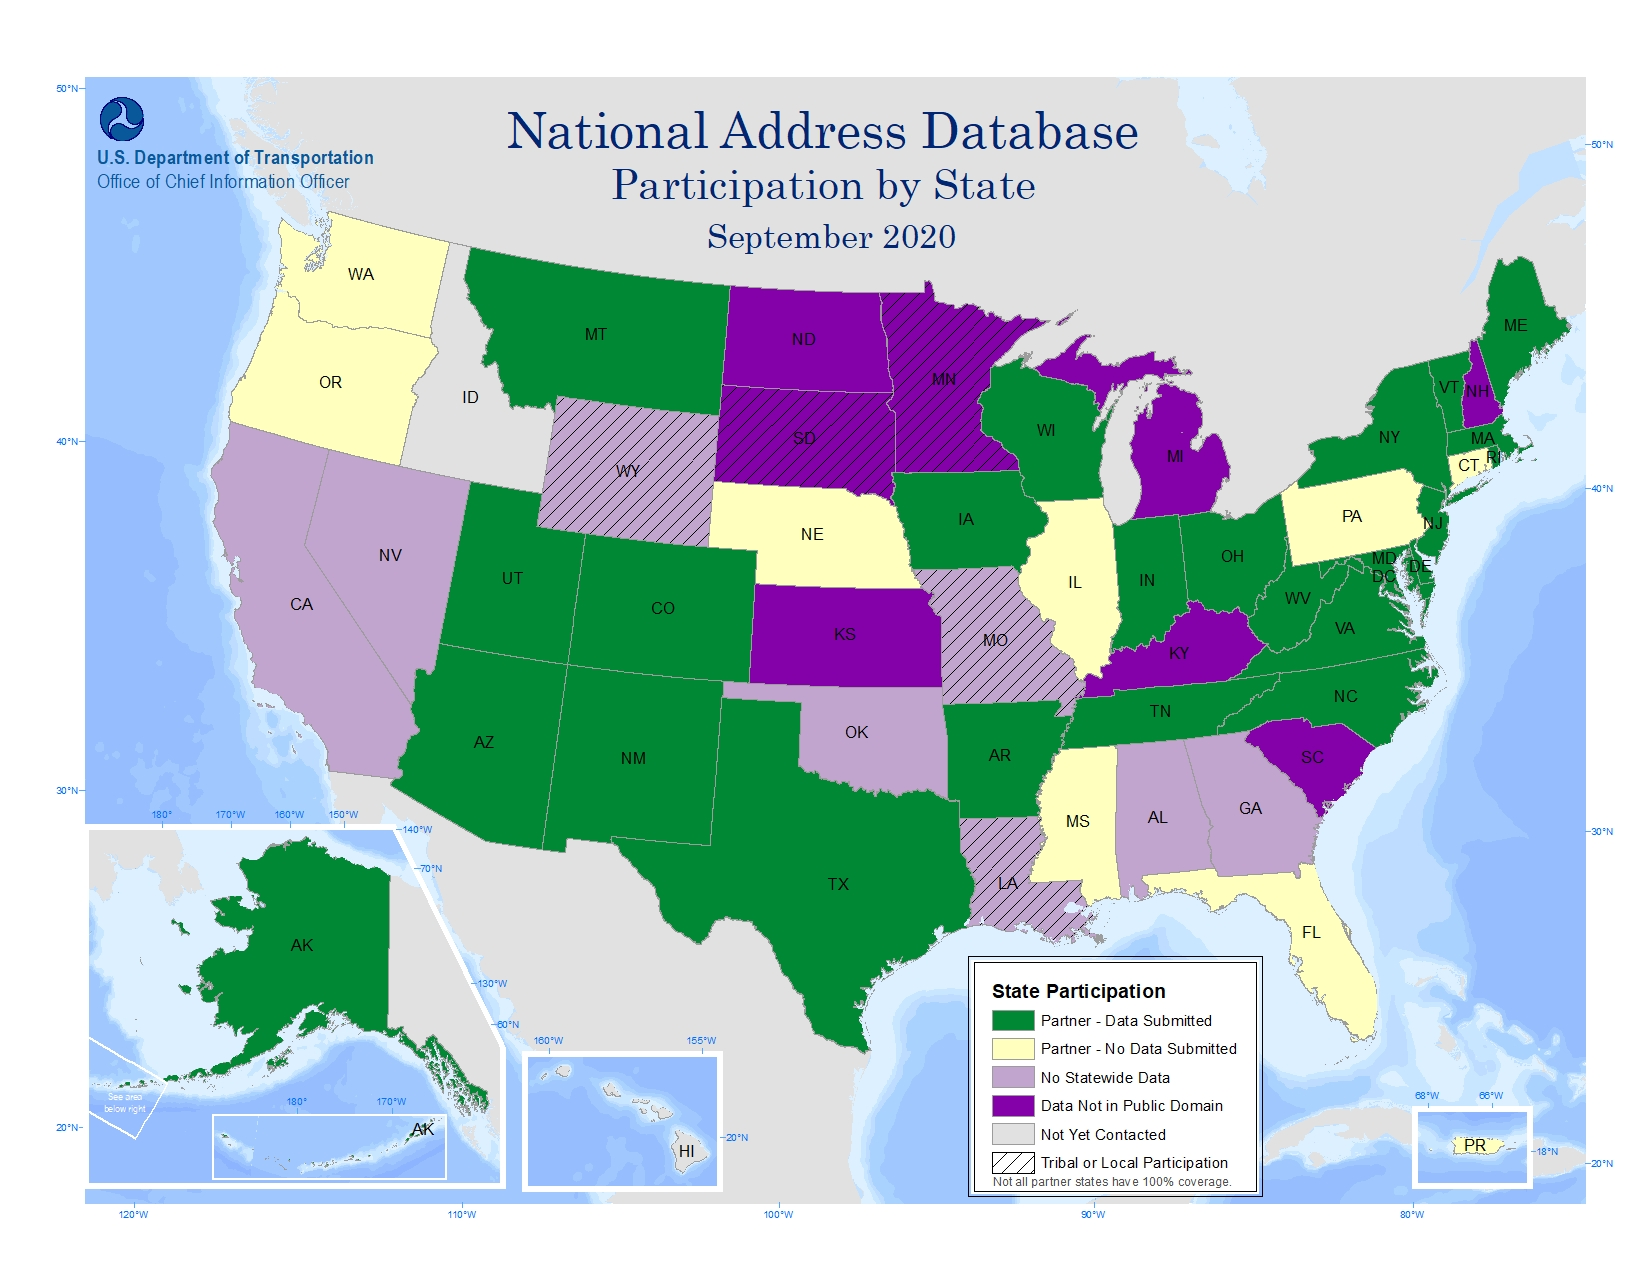 """The map includes a color-coded key that identifies the National Address Database (NAD) partner participation level by state."""